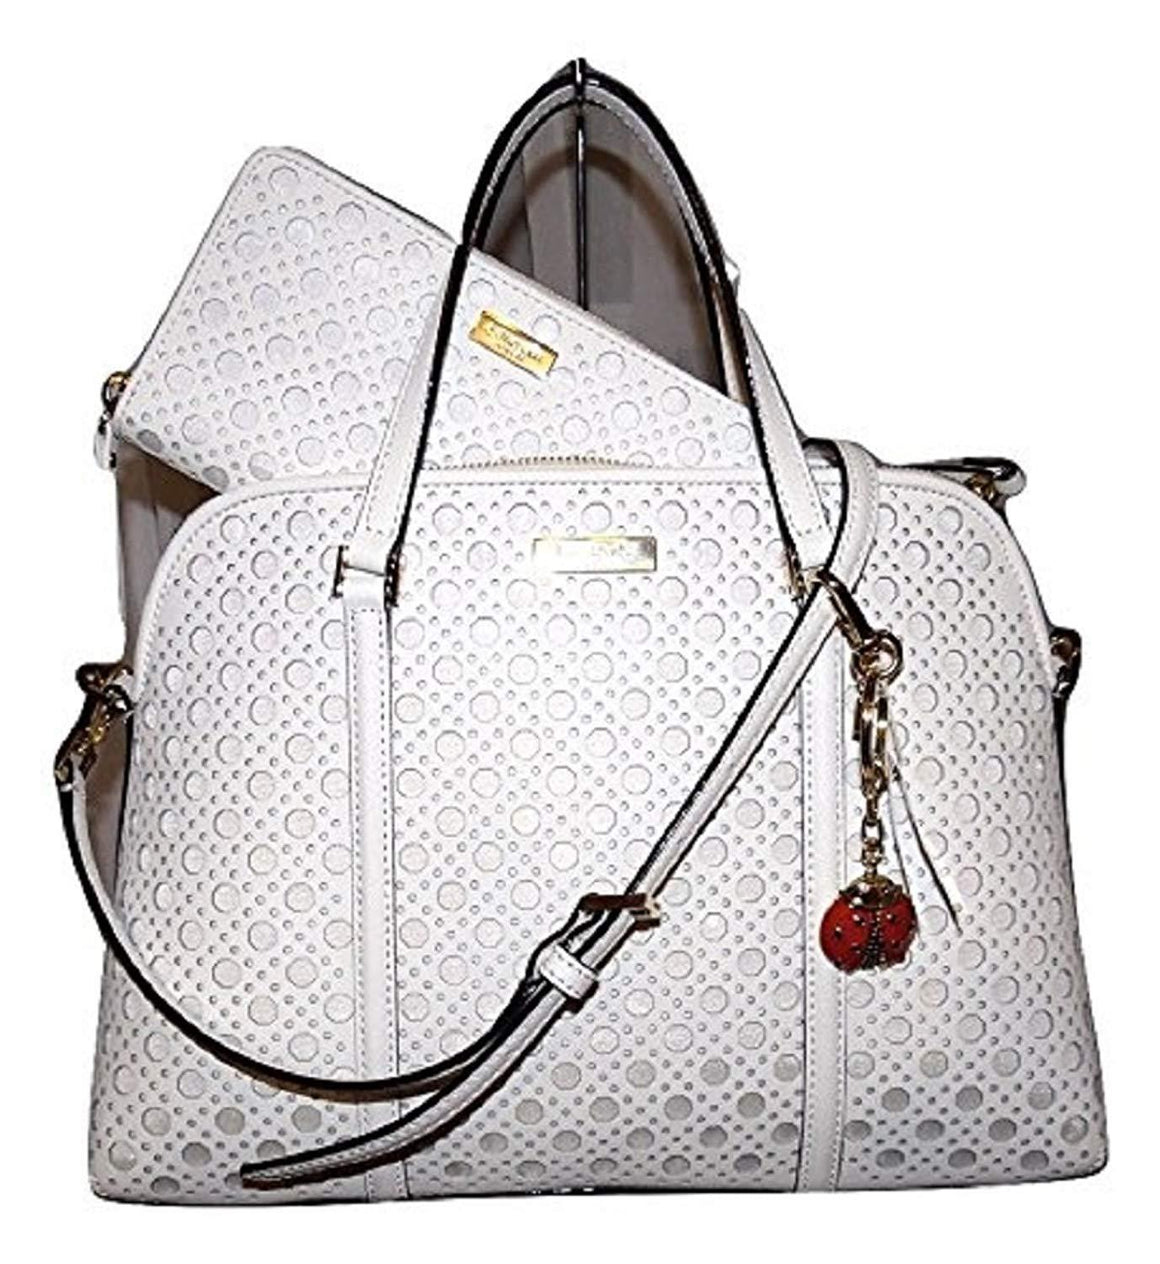 Kate Spade WKRU3659 New York Newbury Lane Caning Small Rachelle Convertible Satchel,Bright White Womens Handbags Kate Spade